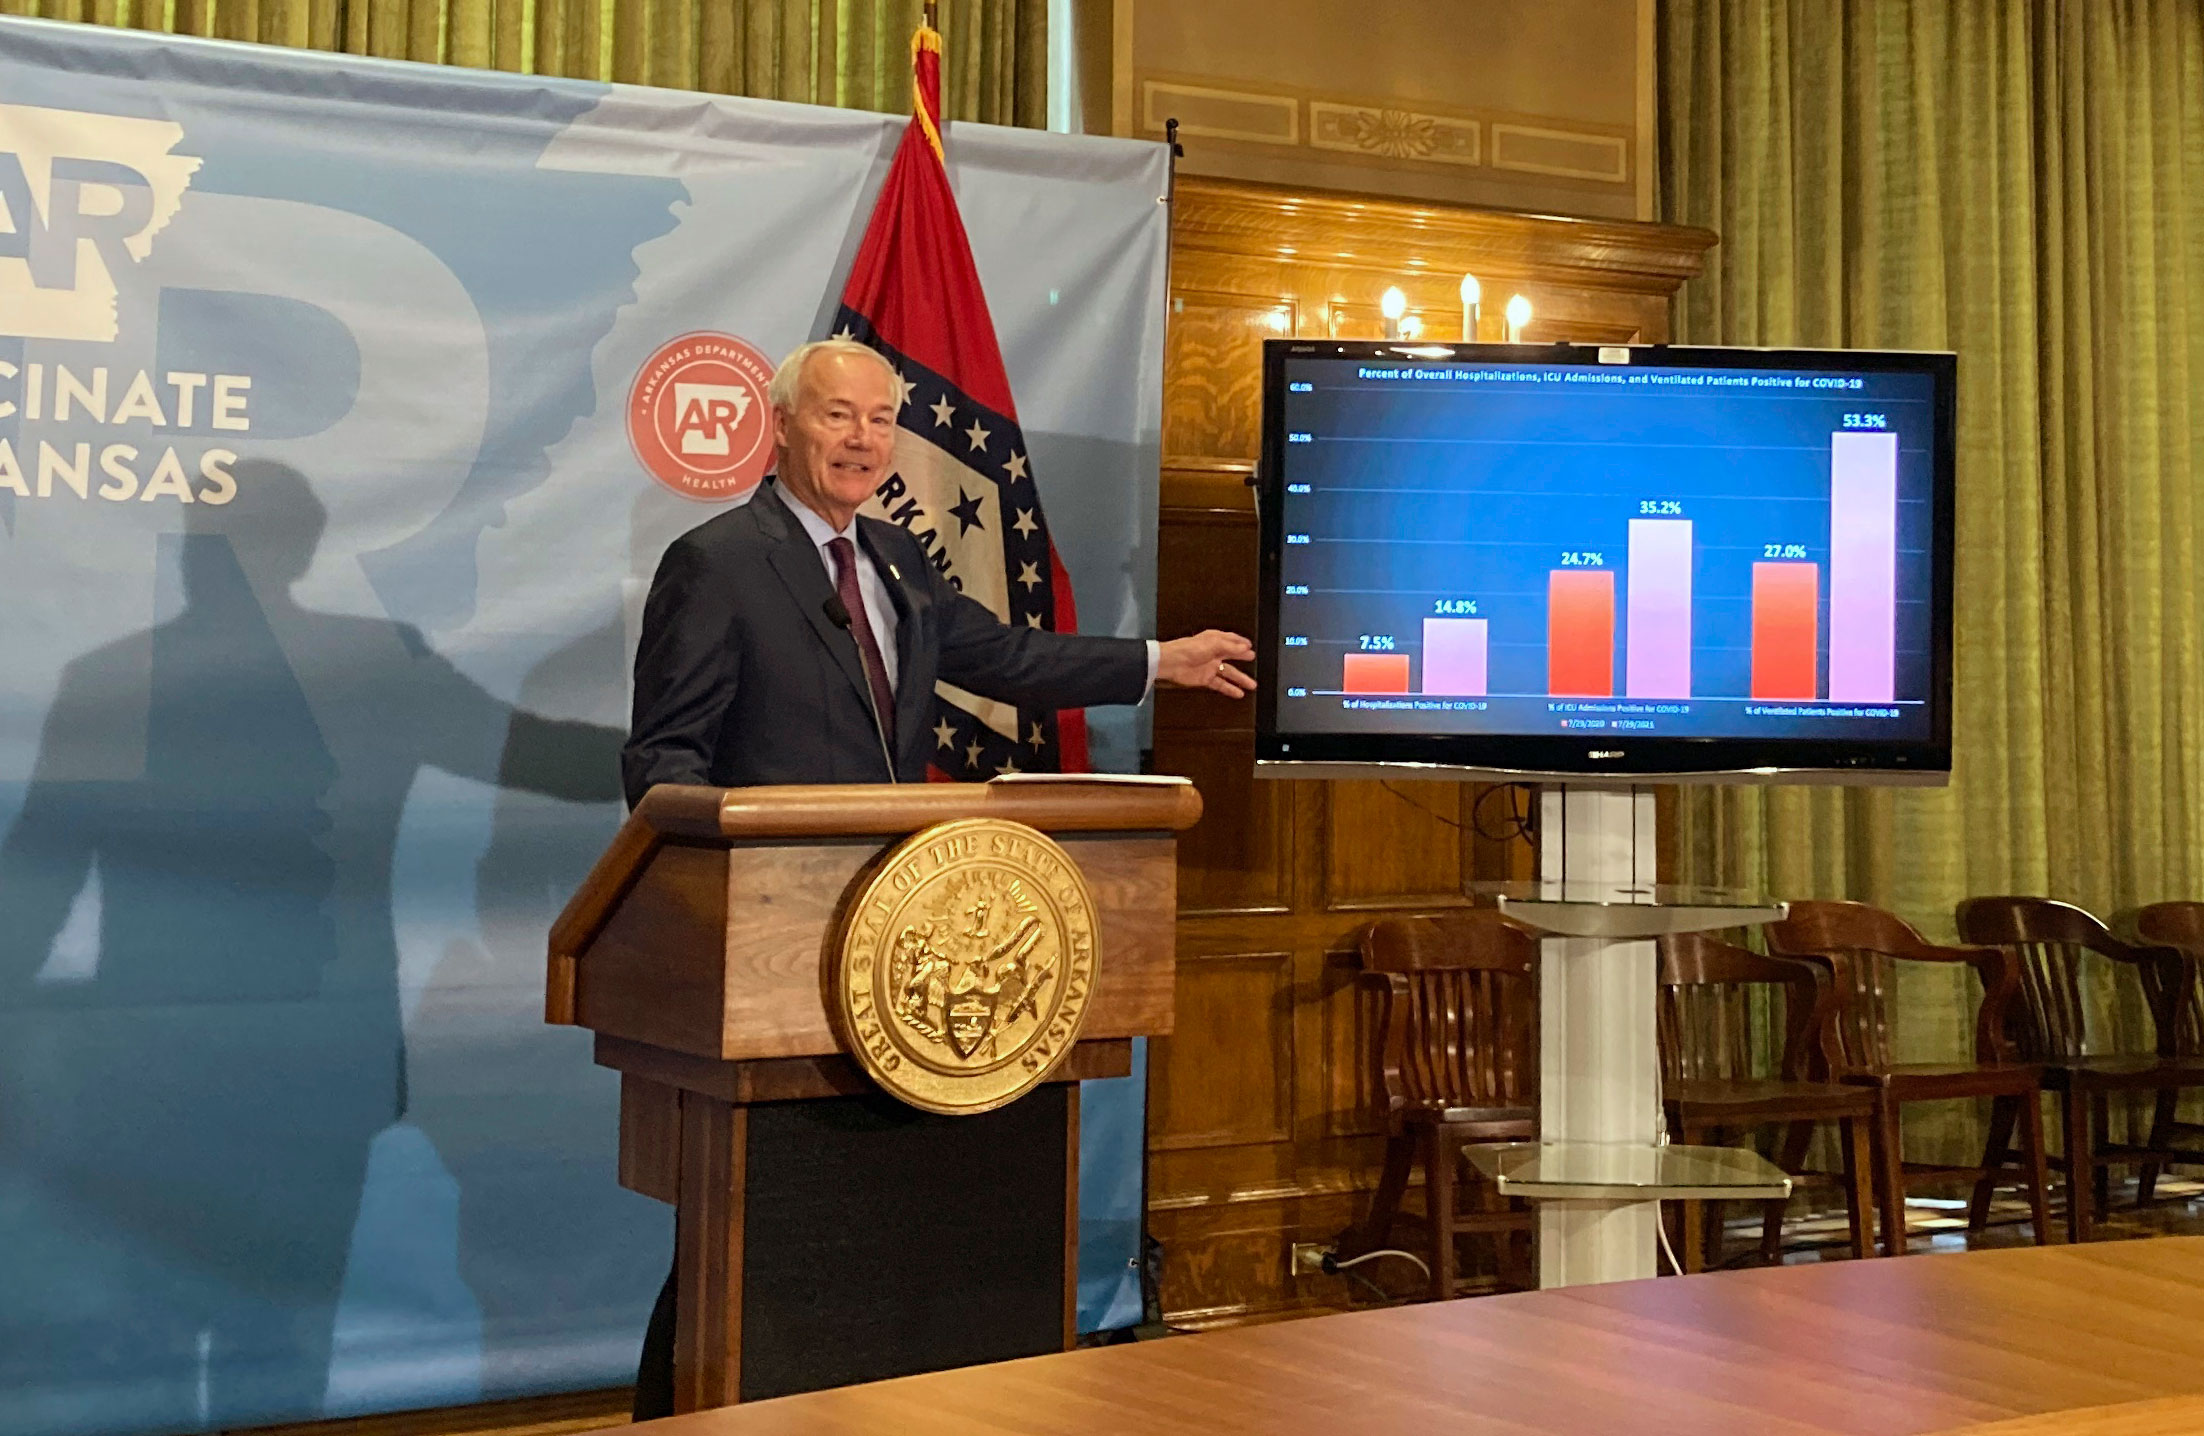 Arkansas Governor Asa Hutchinson speaks at a news conference in Little Rock, on Thursday, July 29.